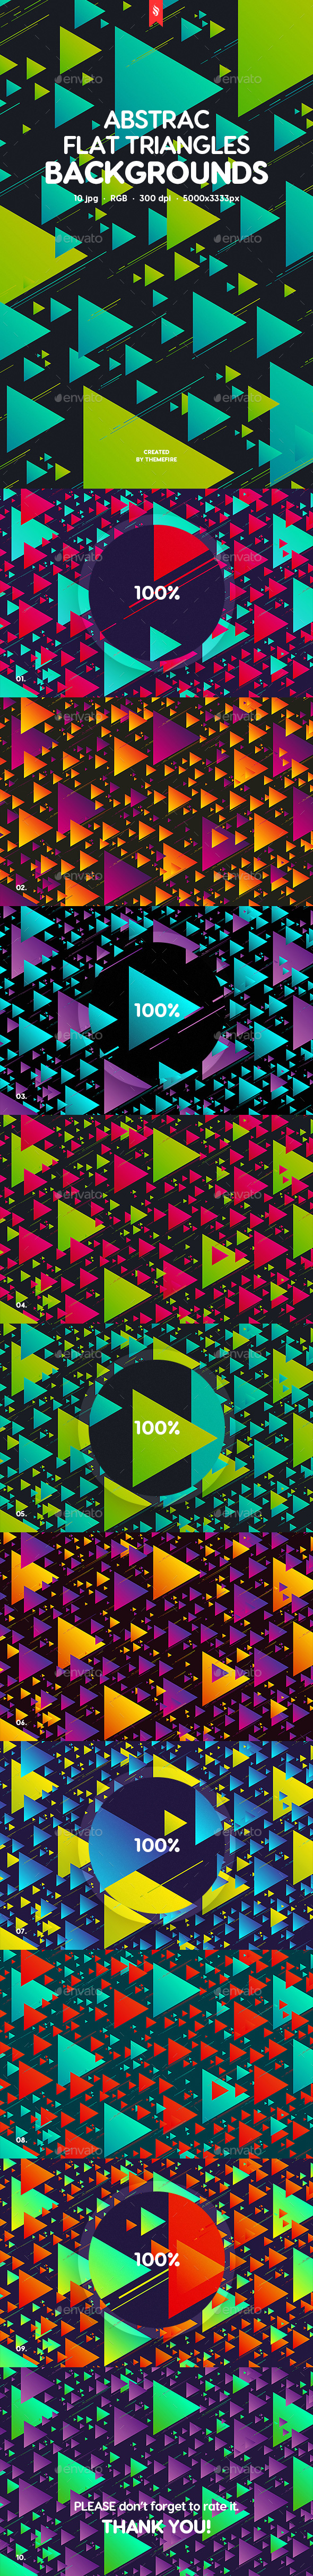 GraphicRiver Abstract Flat Triangles Backgrounds 20262395